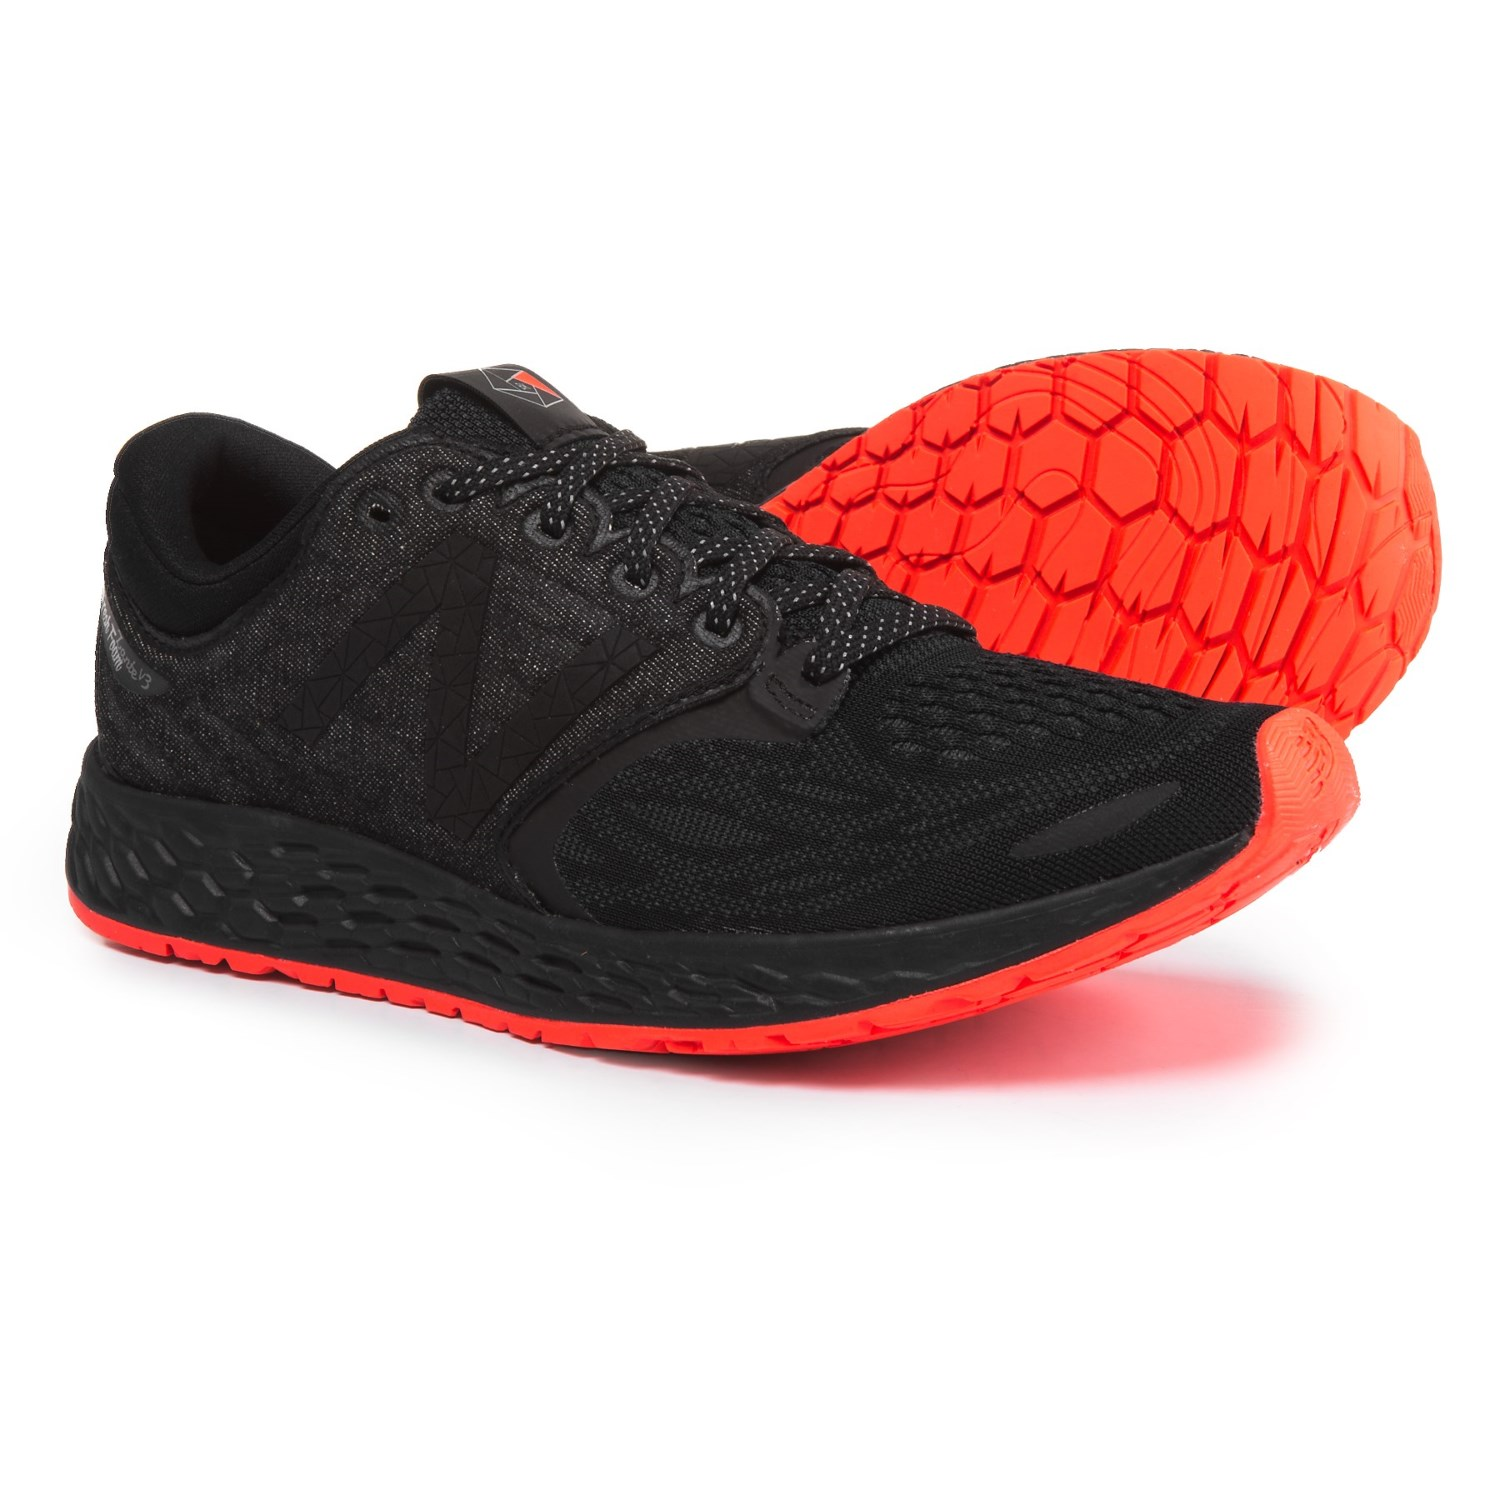 Size Up On New Balance Running Shoes